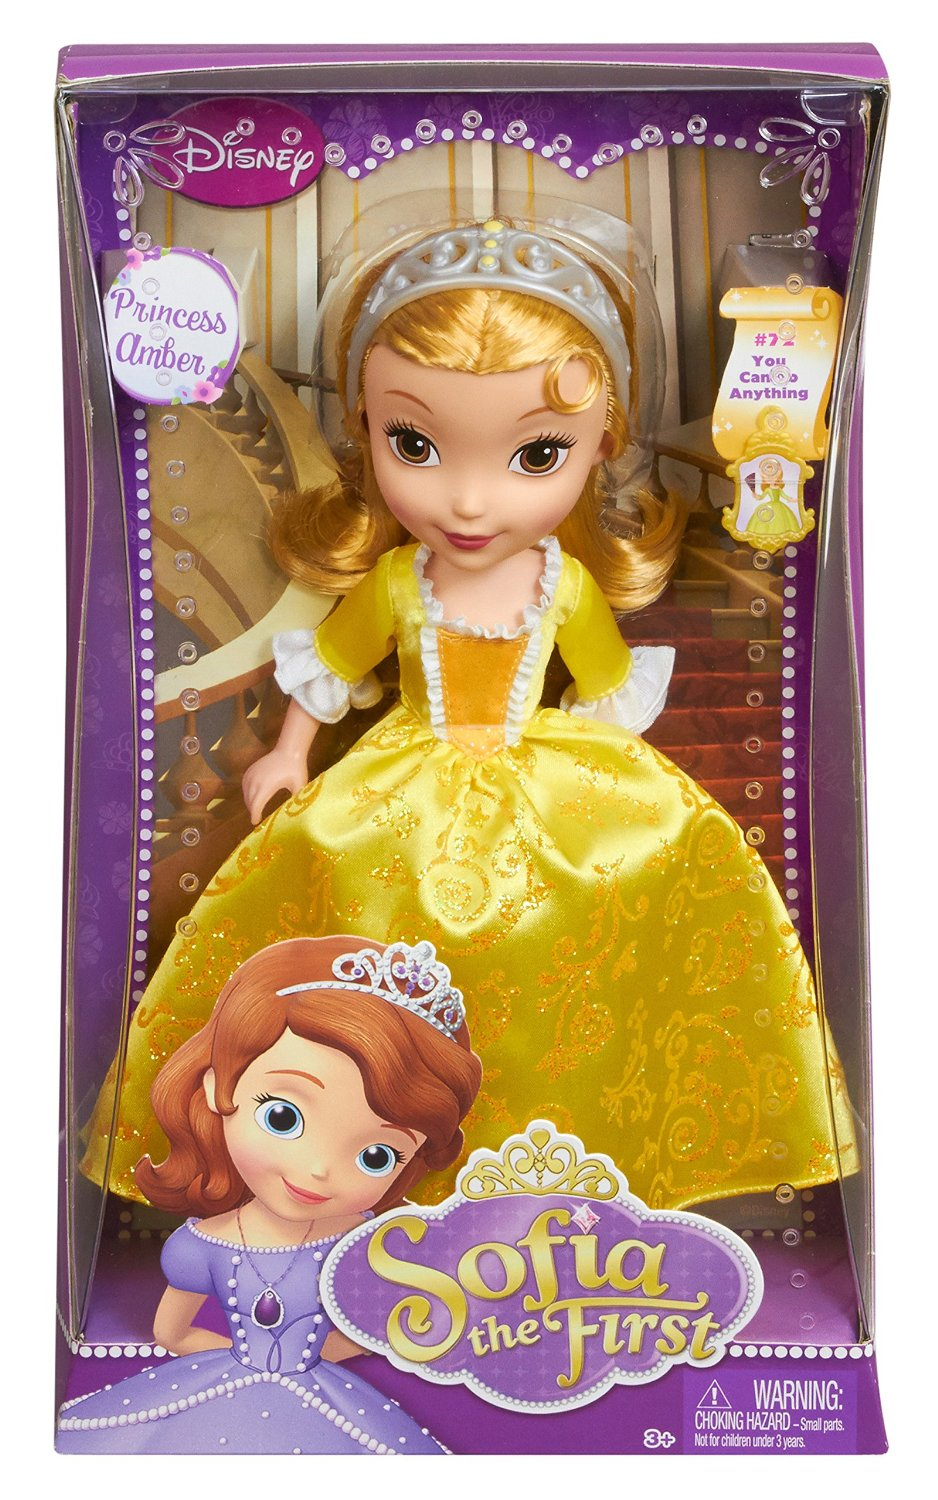 91jWmhbiuXL. SL1500  Amazon: Disney Sofia The First 10 Amber Doll Only $11.51 Shipped (Reg. $19.99)